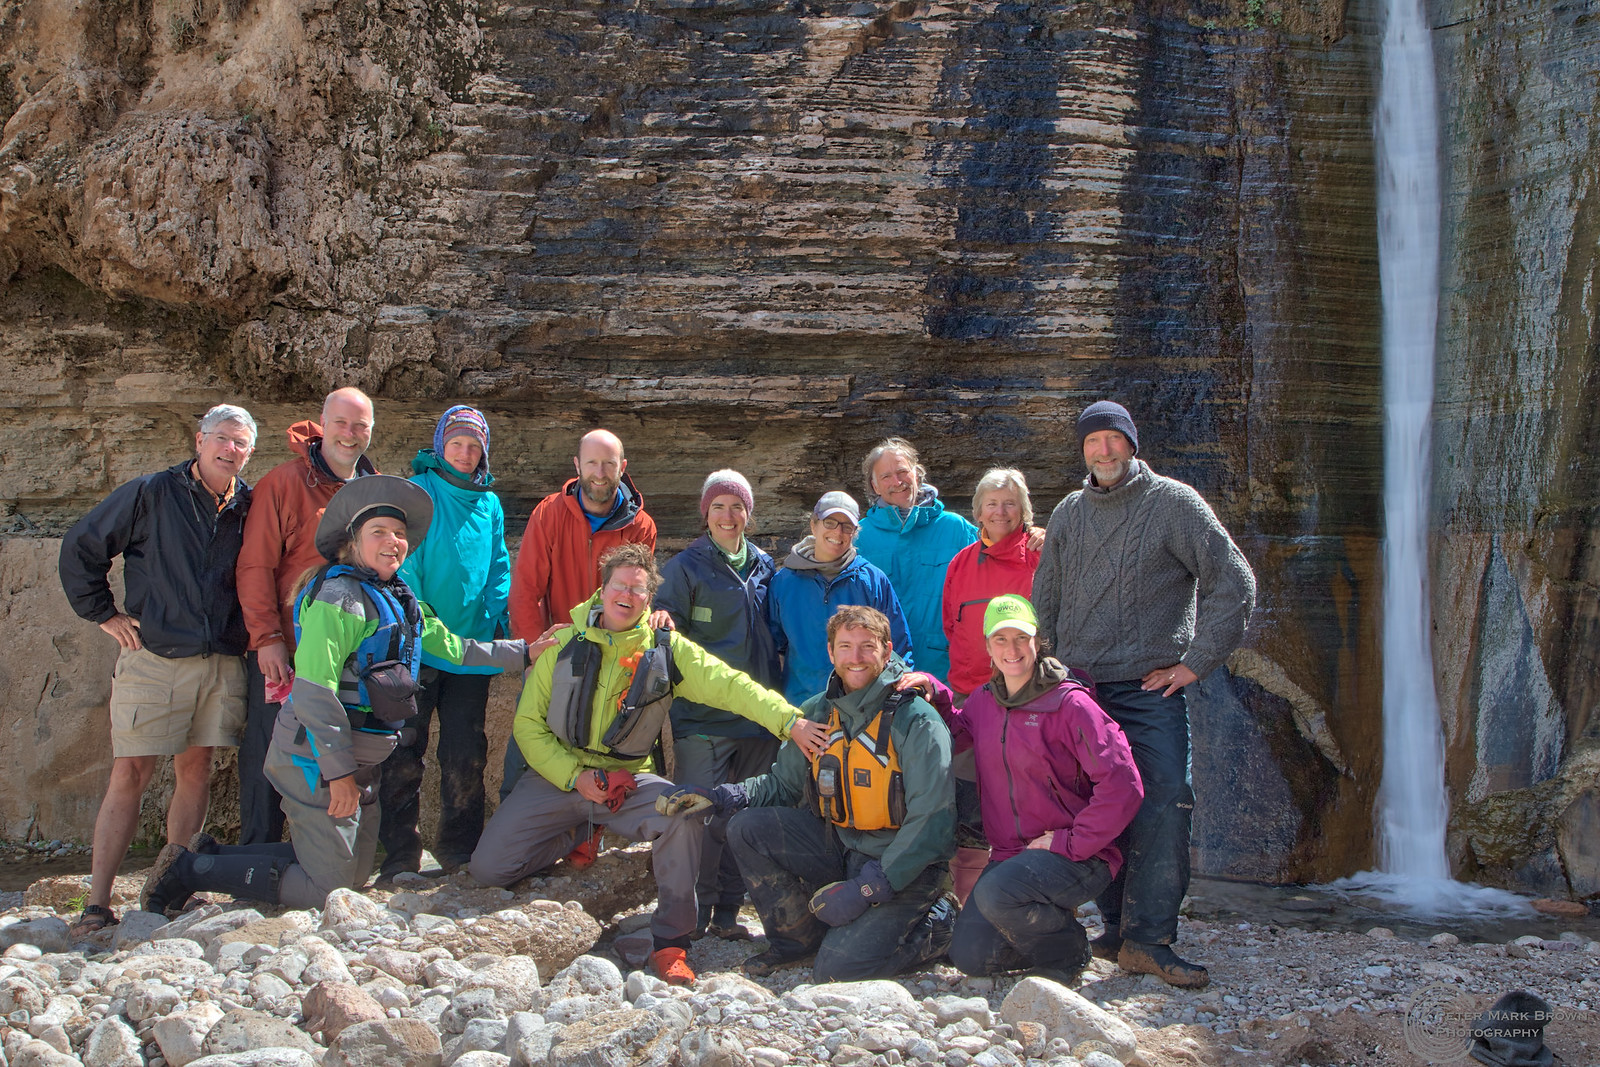 Group at Columbine Falls